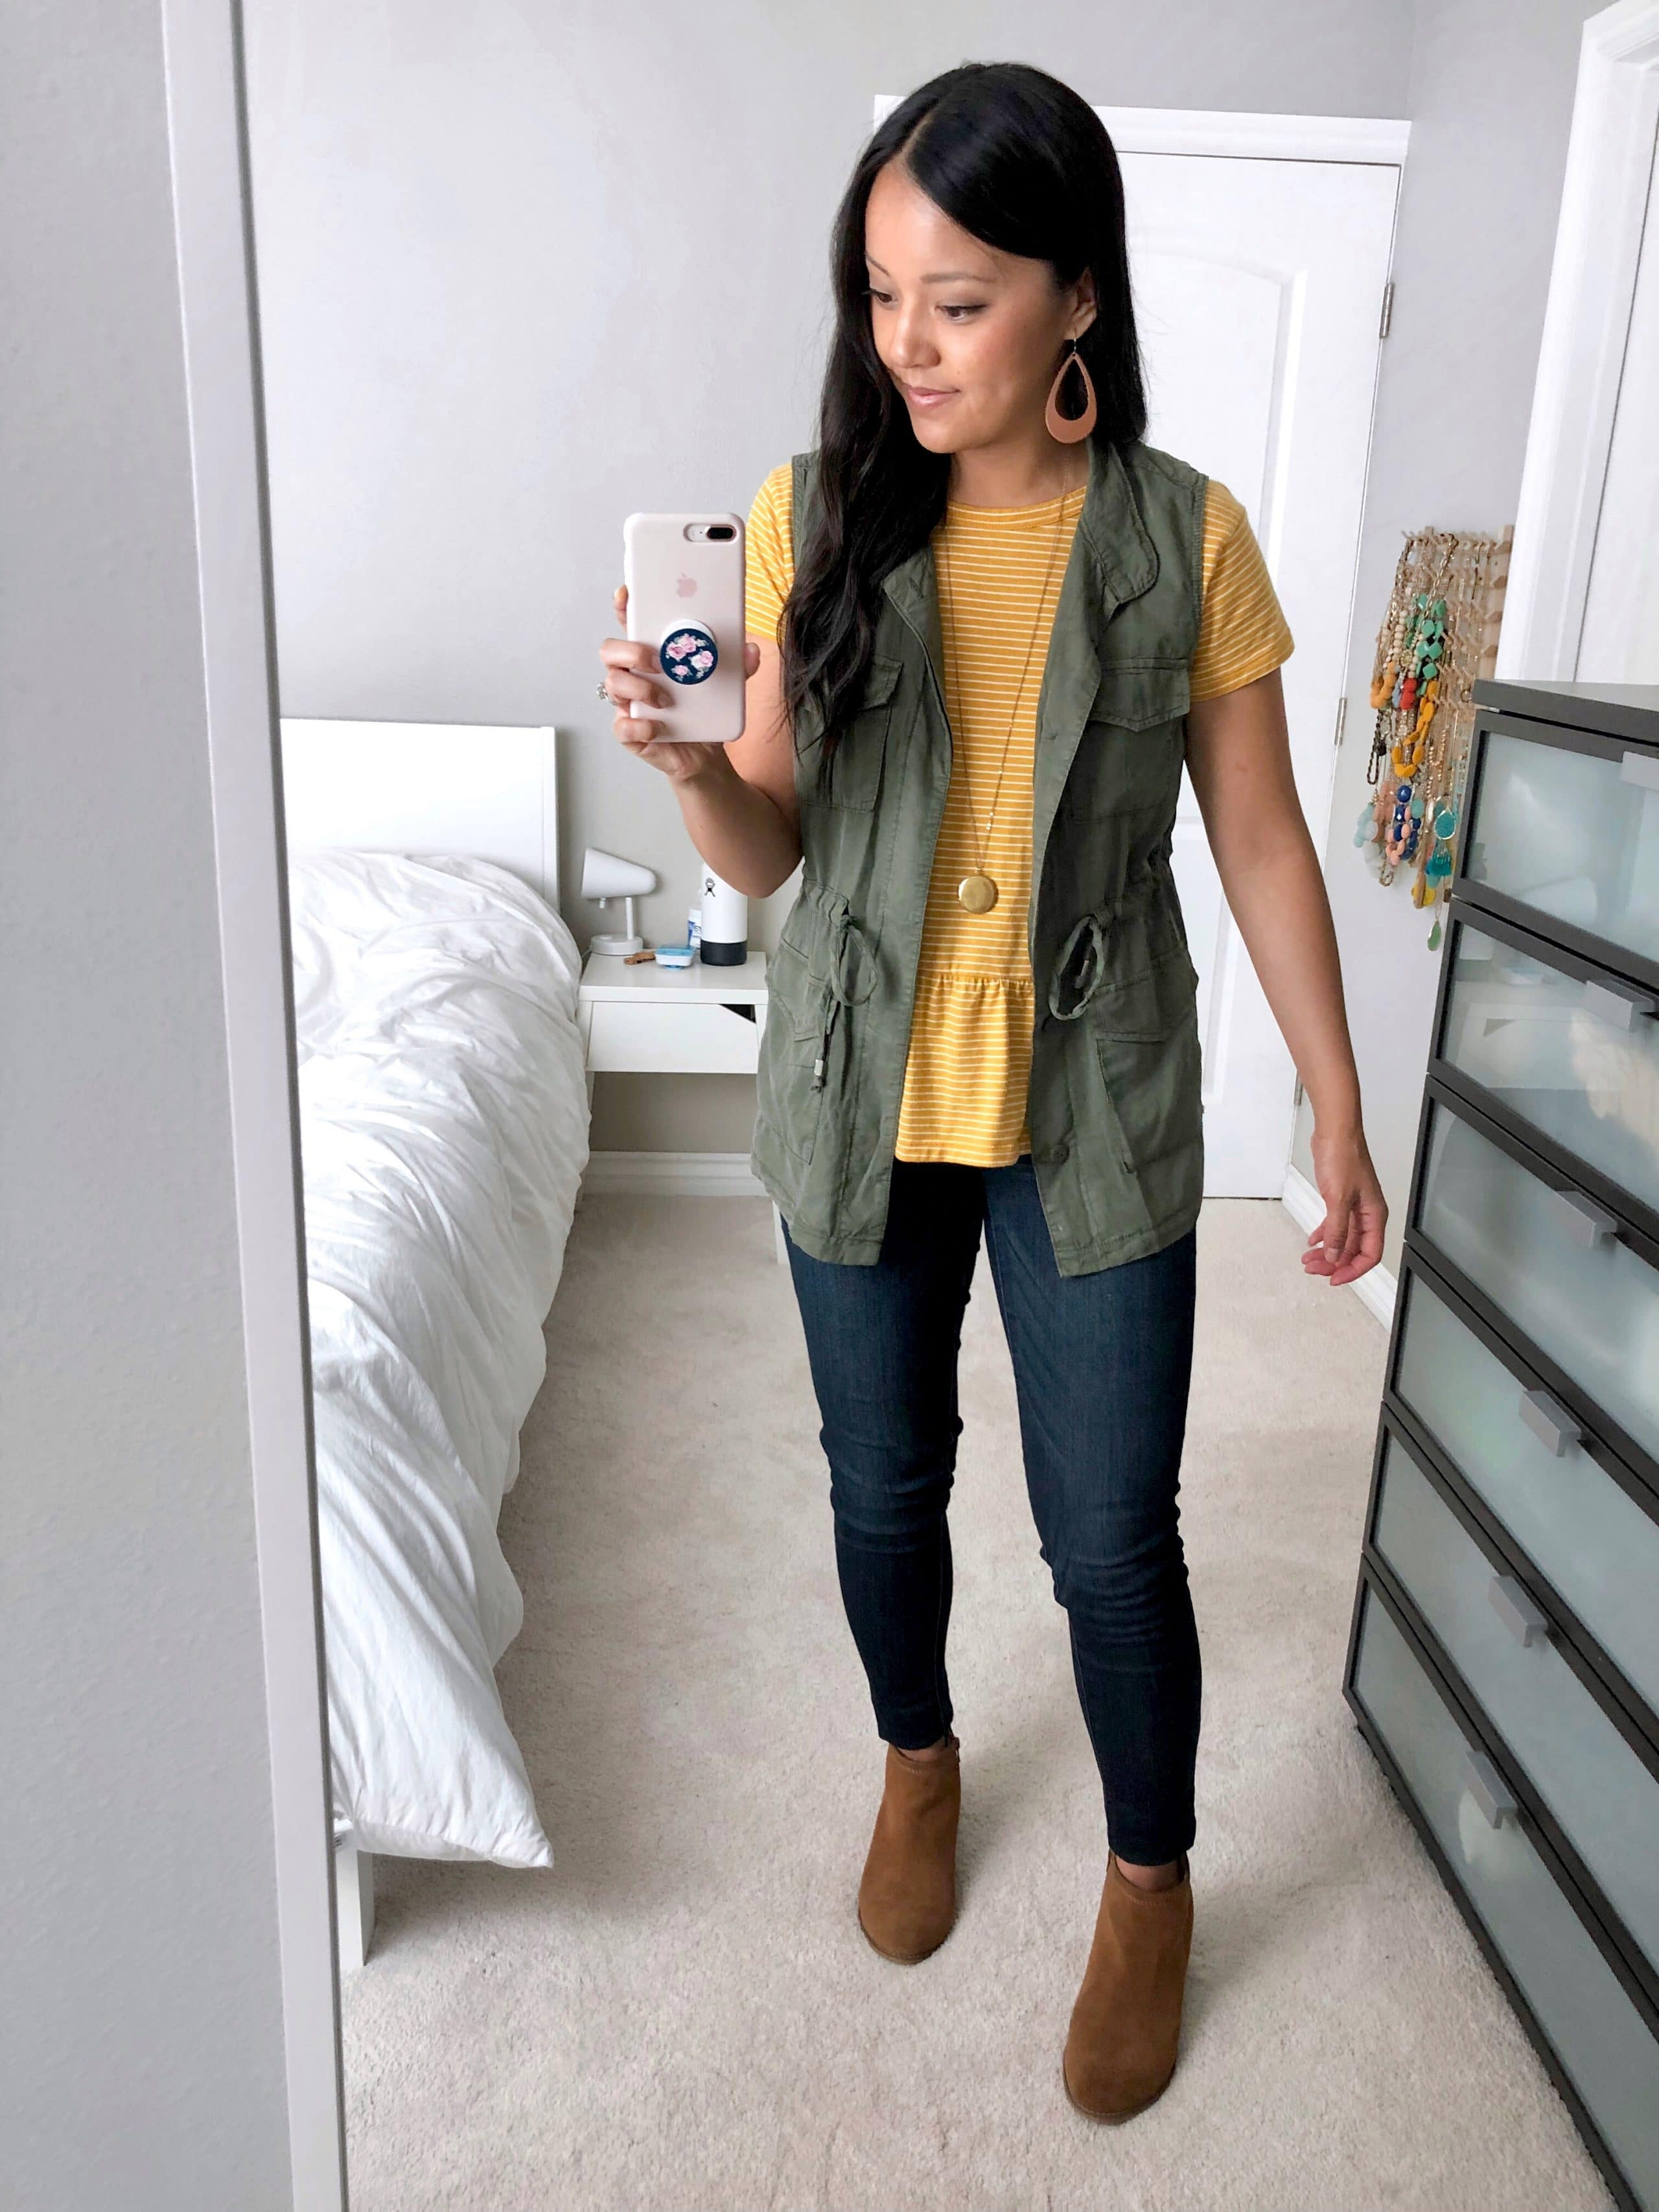 Yellow Peplum top + Utility Vest + Skinnies + Cognac Booties + Earrings